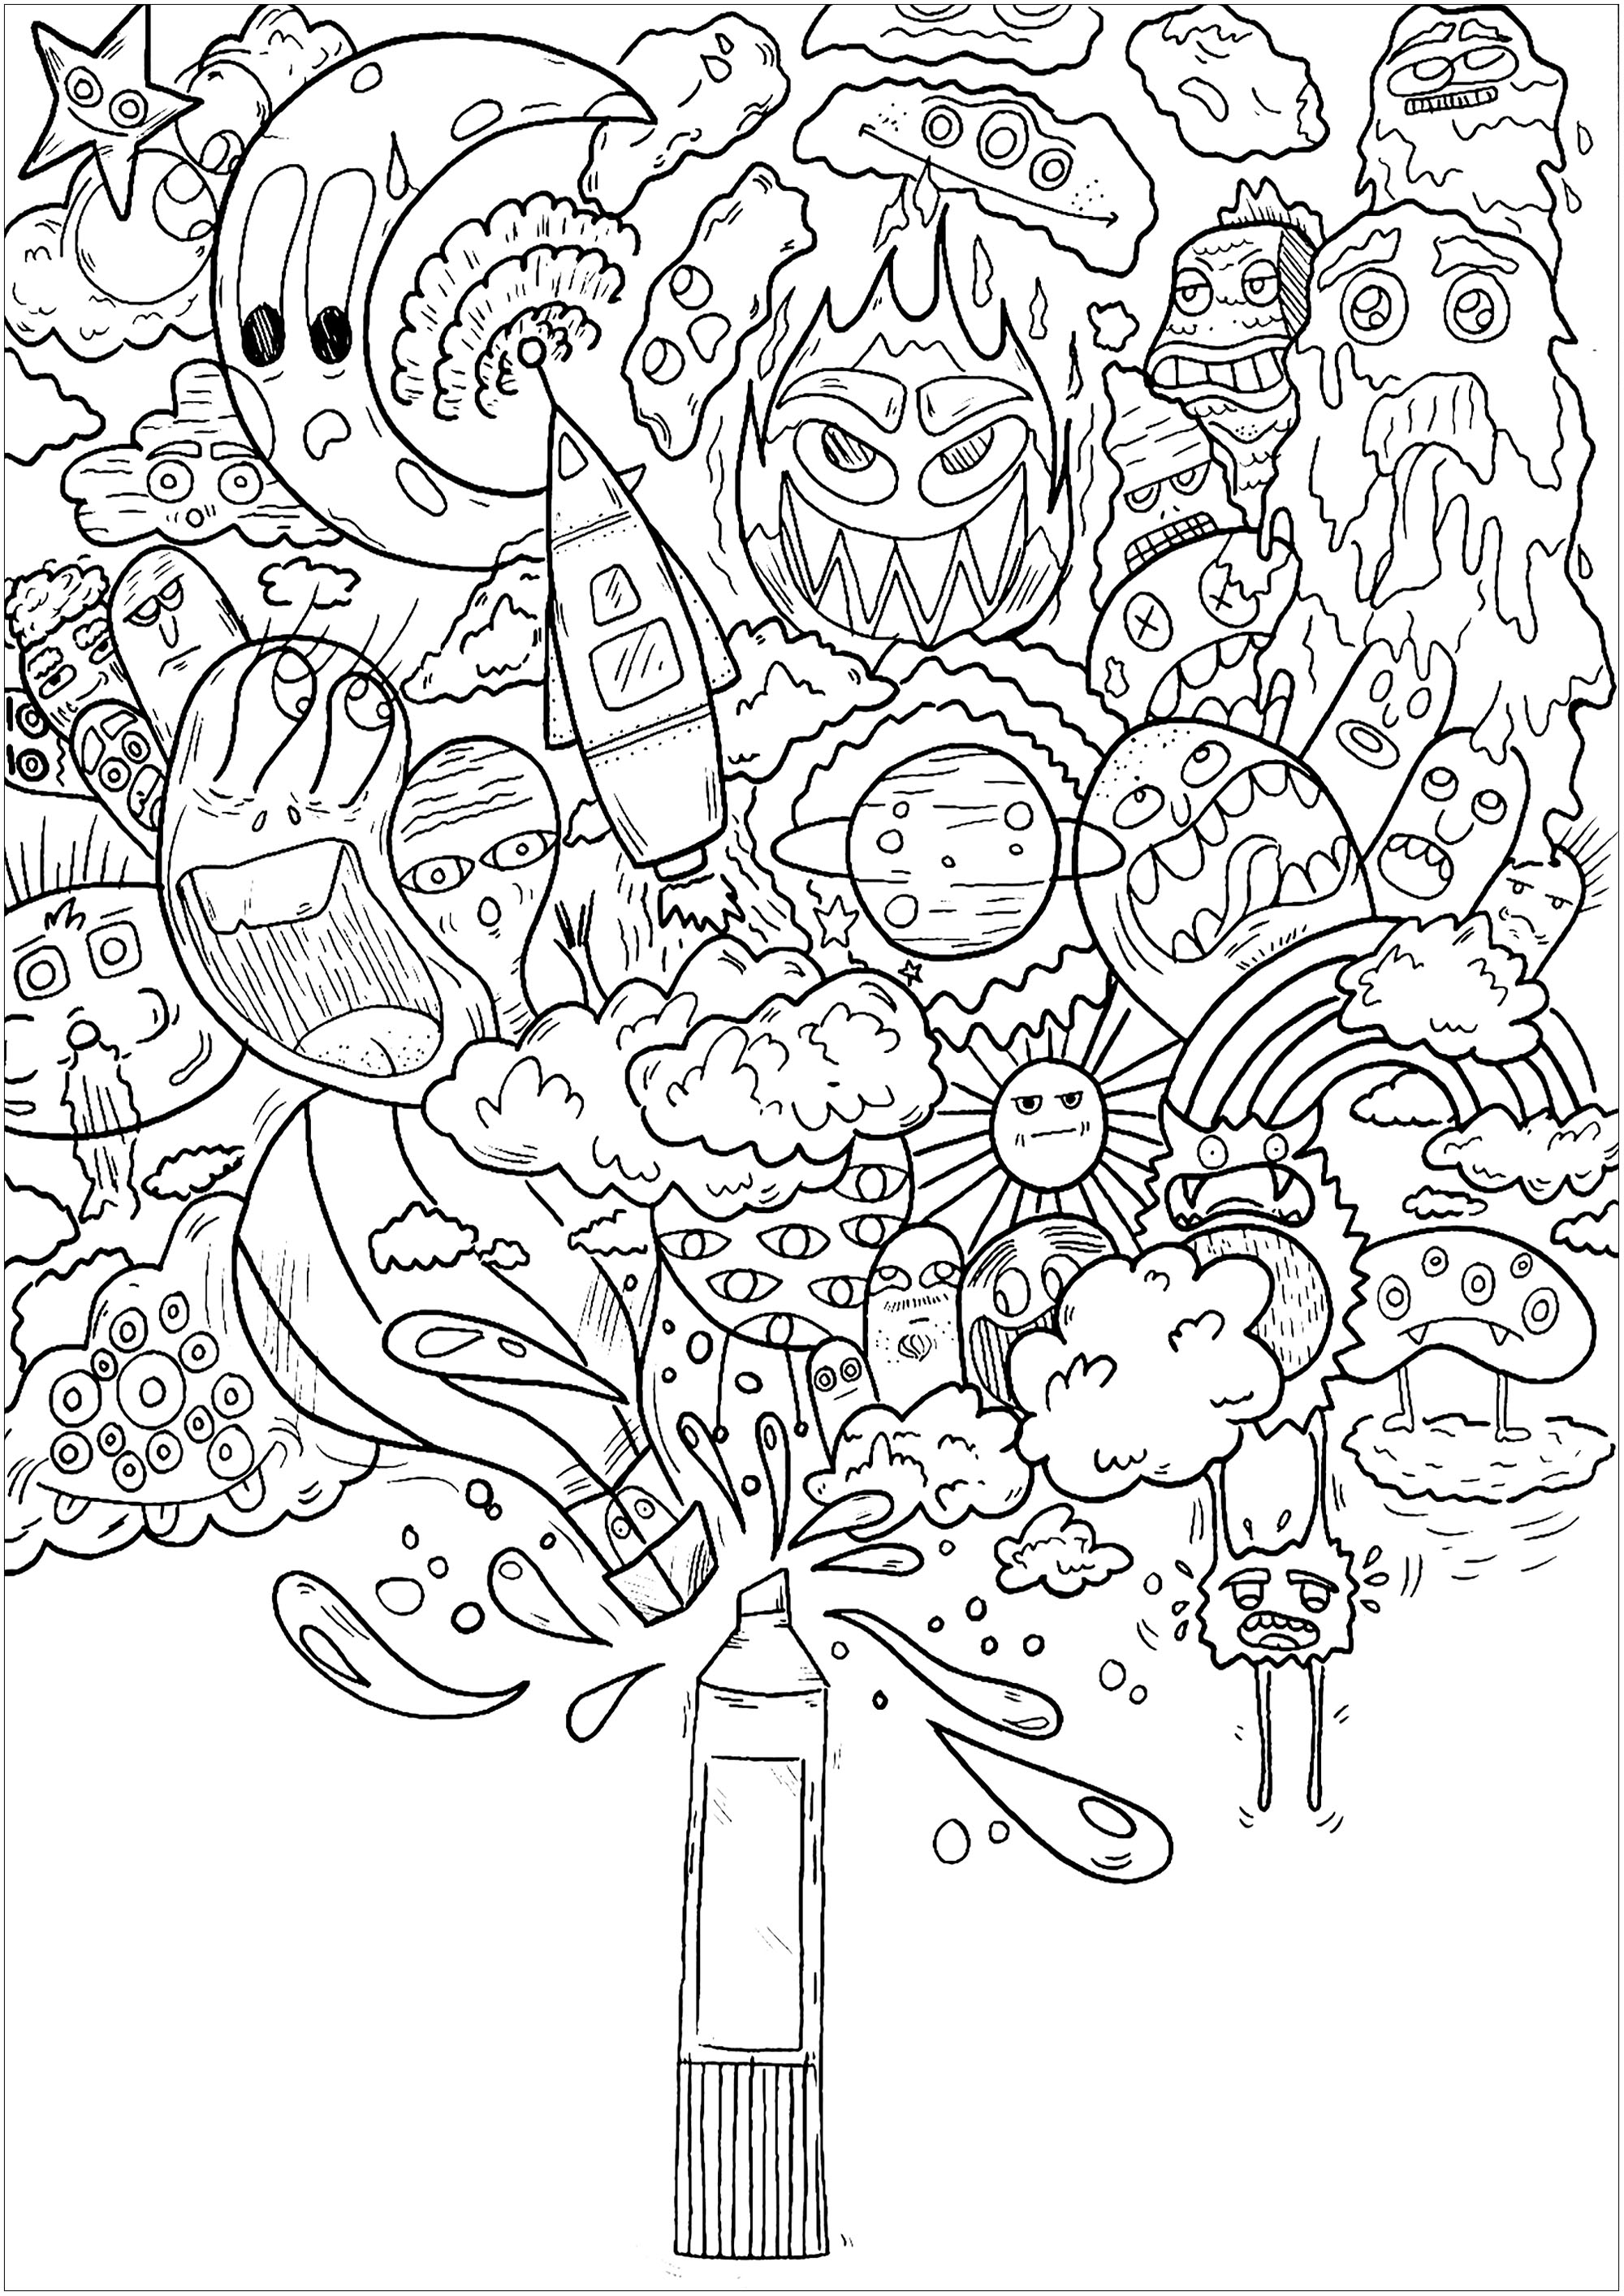 kids drawings for colouring cute coloring pages getcoloringpagescom drawings kids colouring for